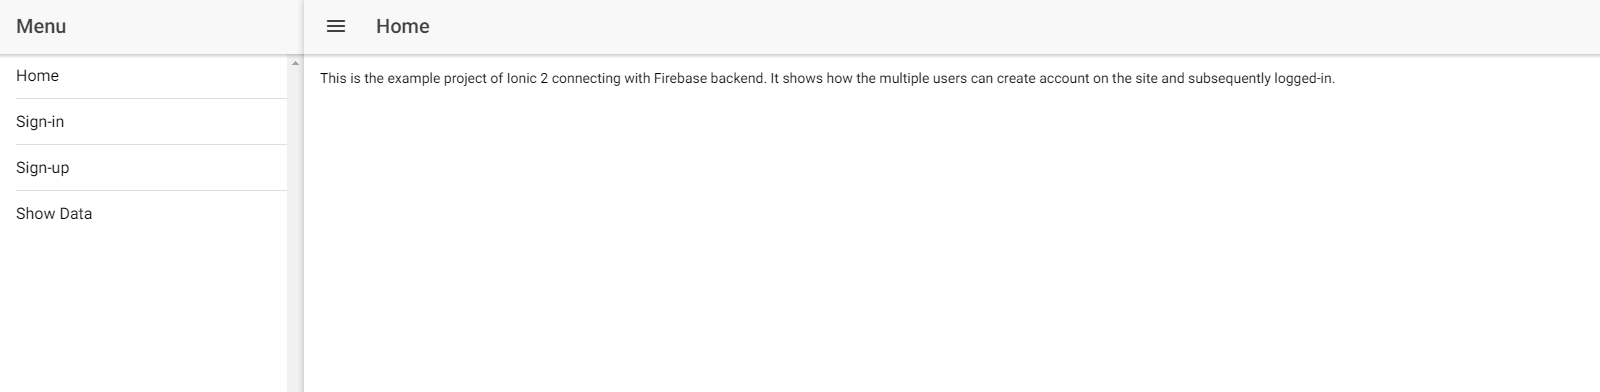 Ionic 2 Forms, Validation and Integration with Firebase